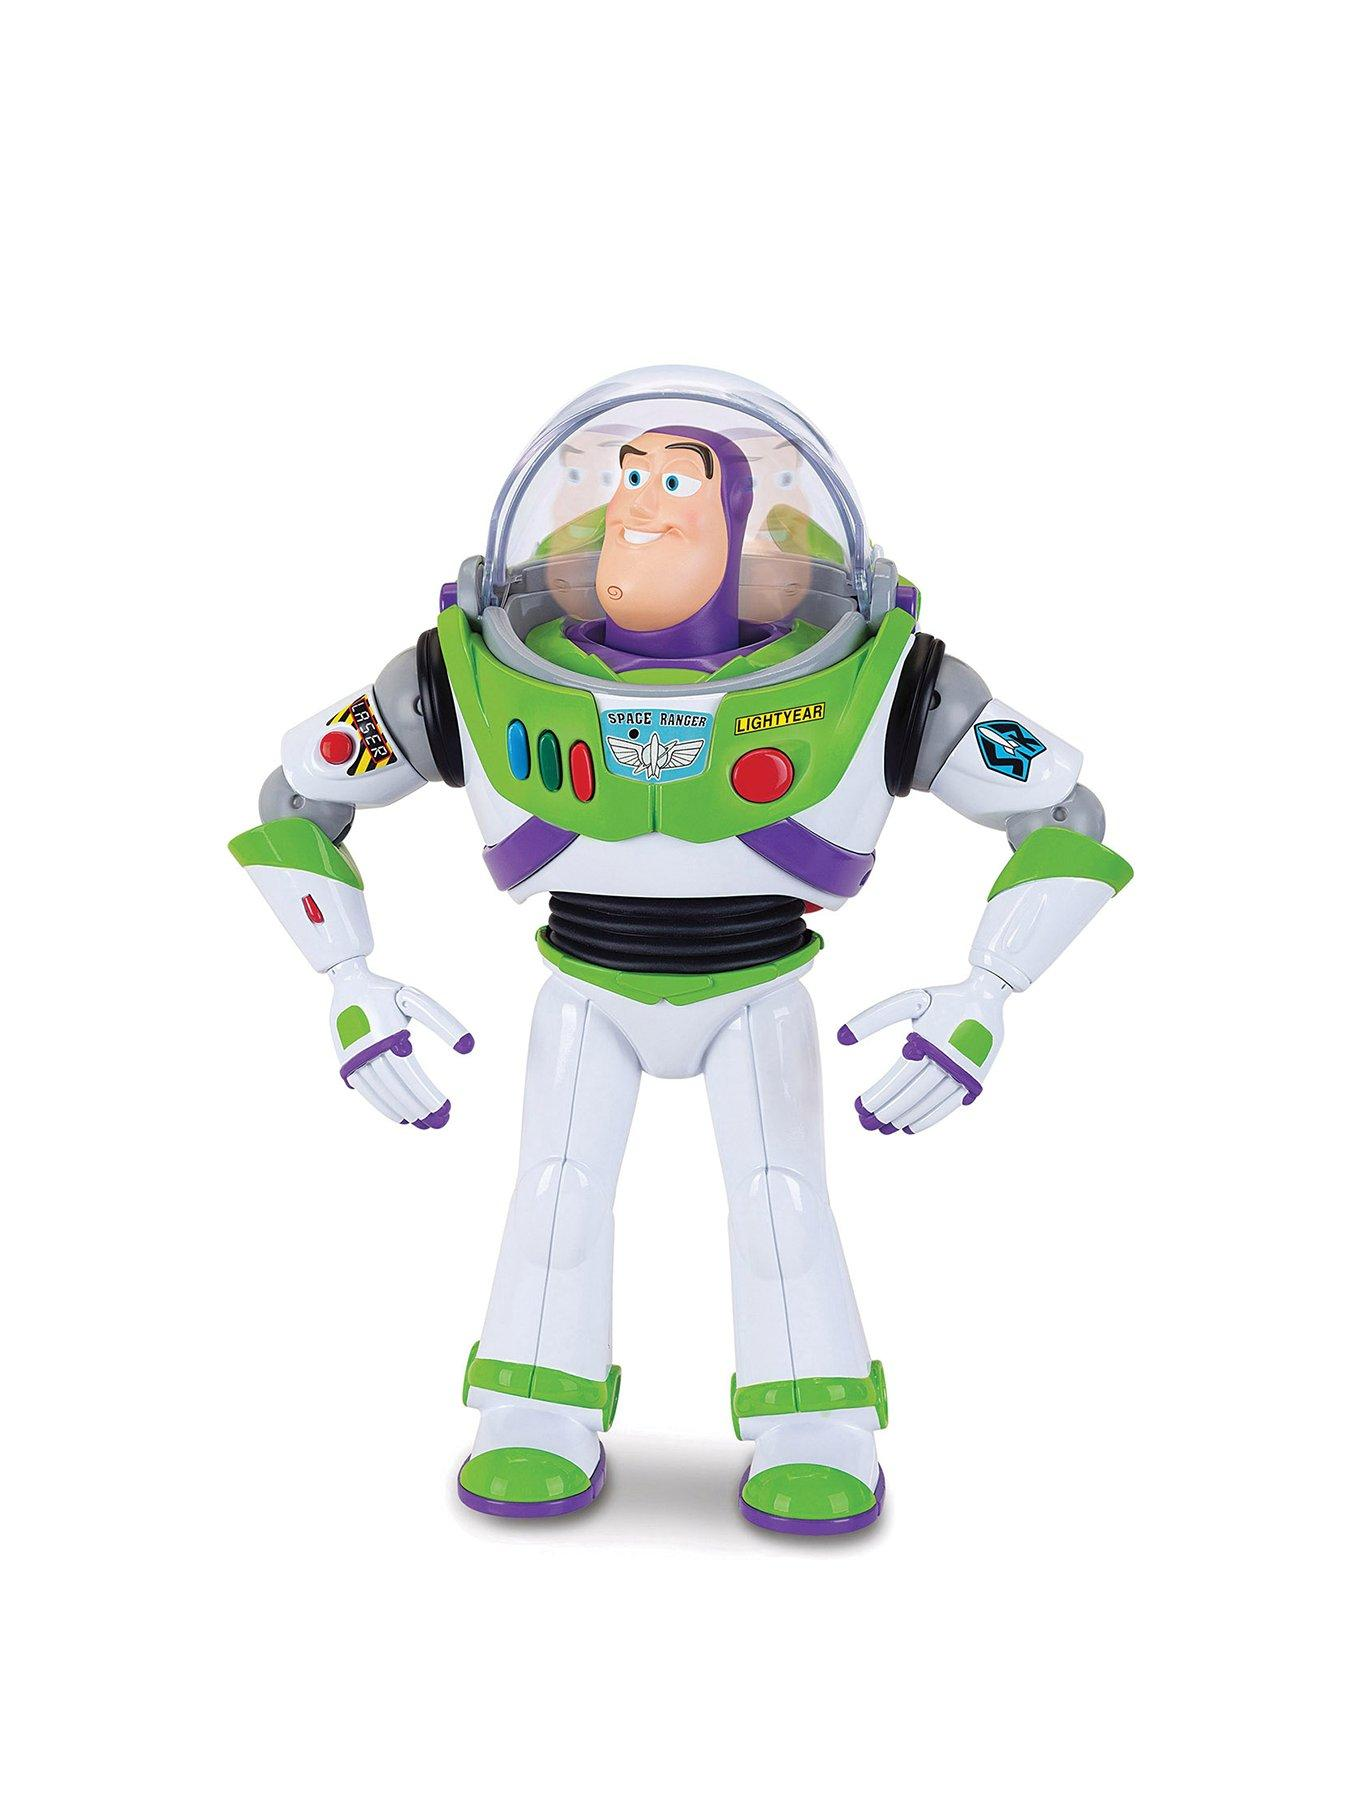 Toy Story 4 Buzz Lightyear Interactive Talking Action Figure NEW